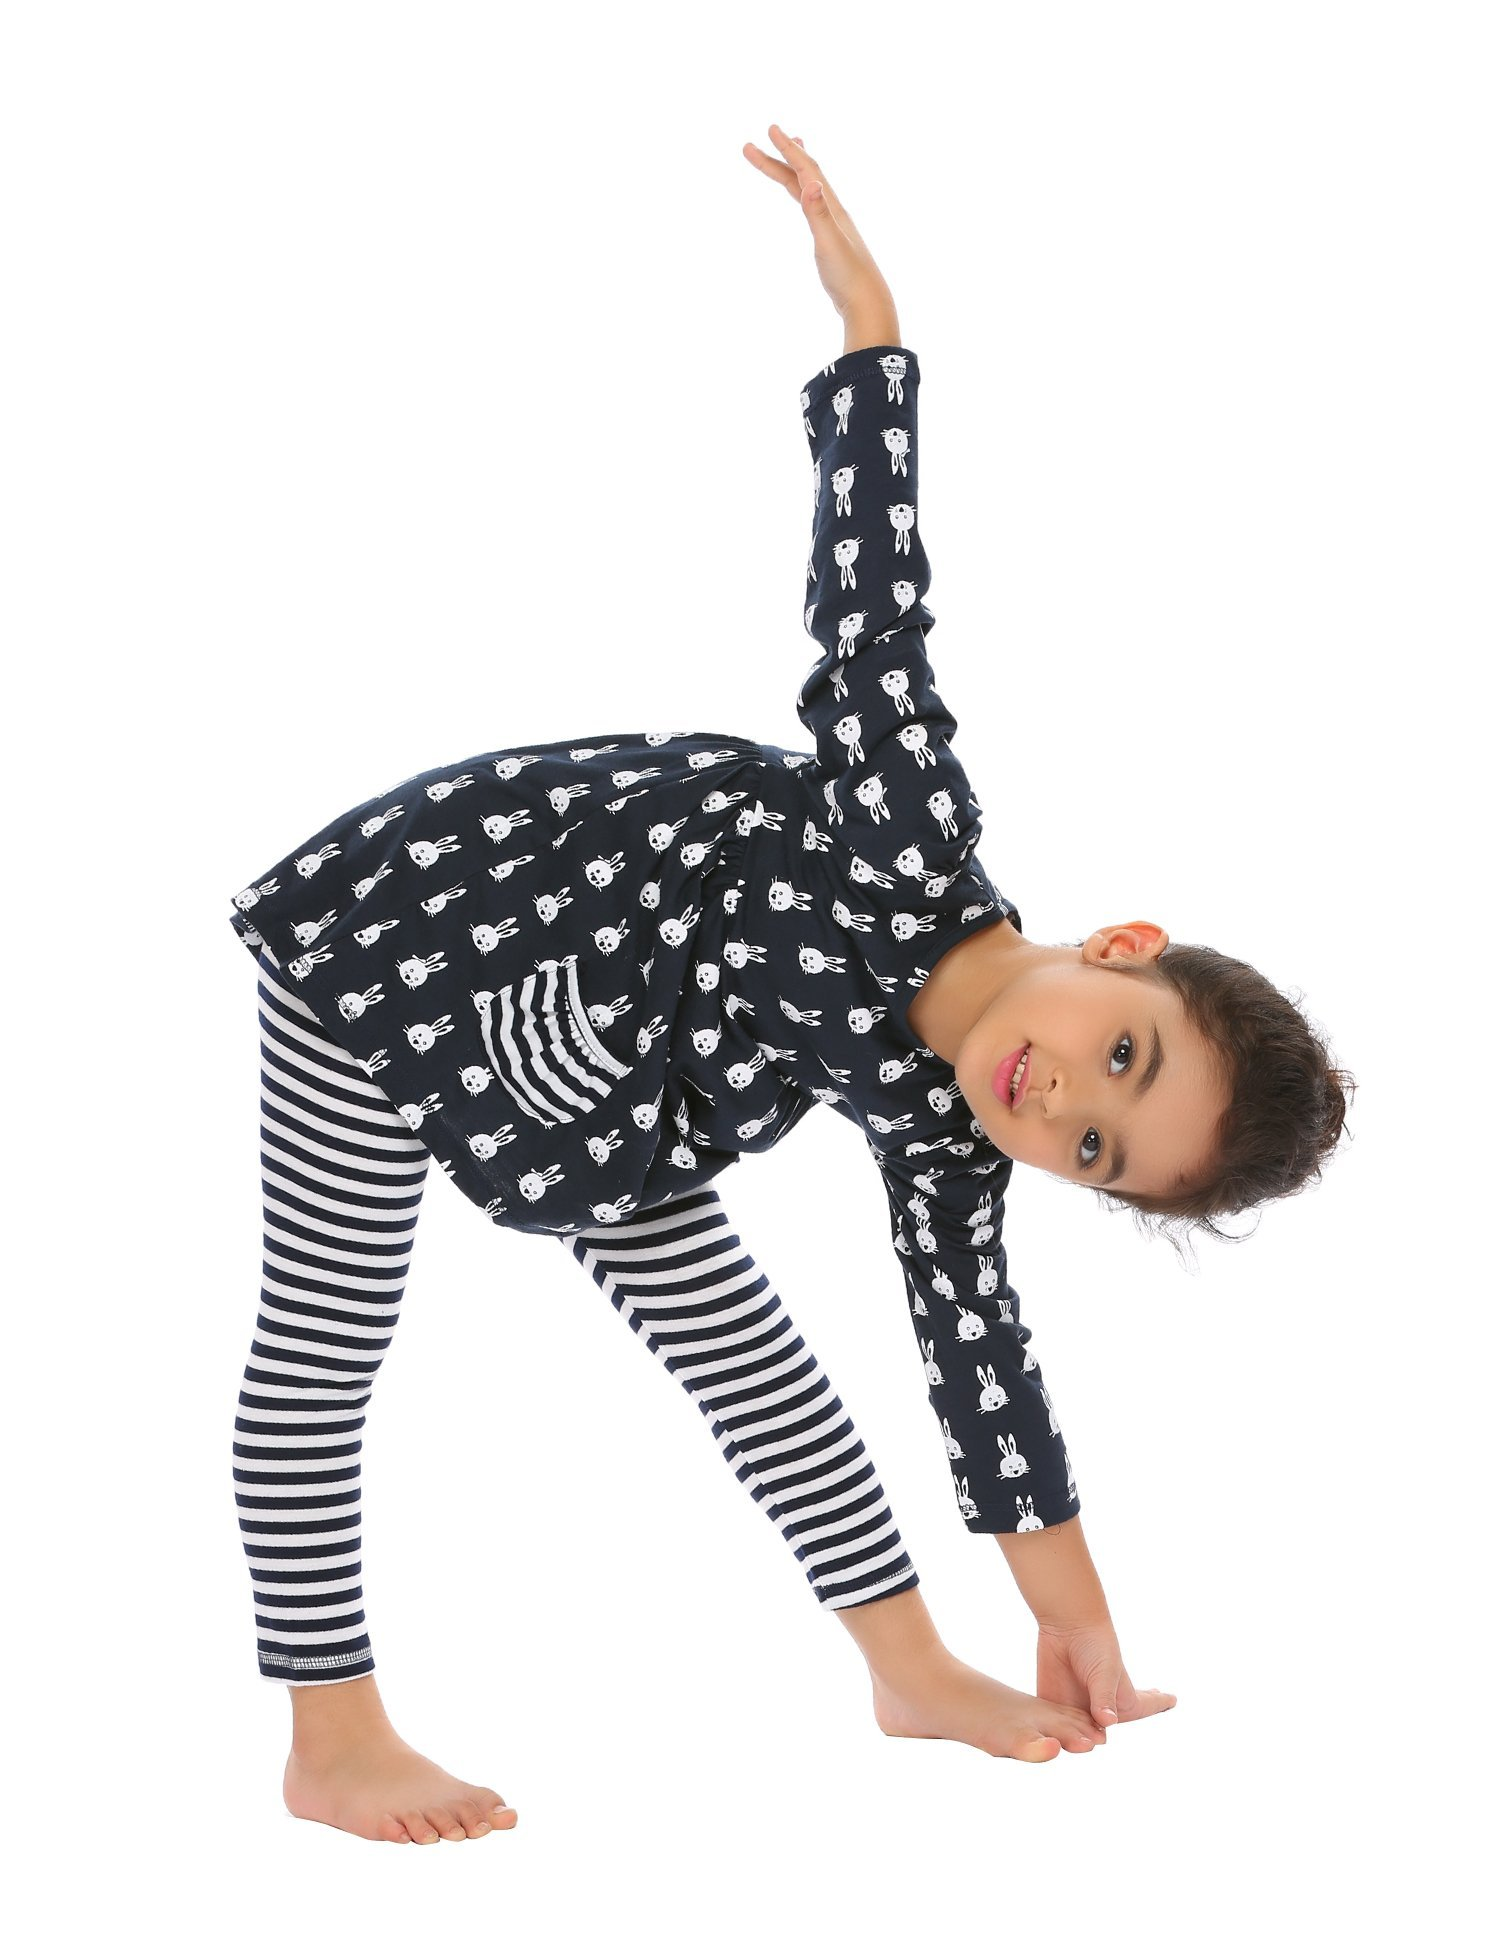 Arshiner Little Girls Long Sleeve Cute Rabbit Print with Pockets Cotton Outfit 12 pcs Pants Sets Top+Legging,Navy Blue,130(7-8years old) by Arshiner (Image #3)